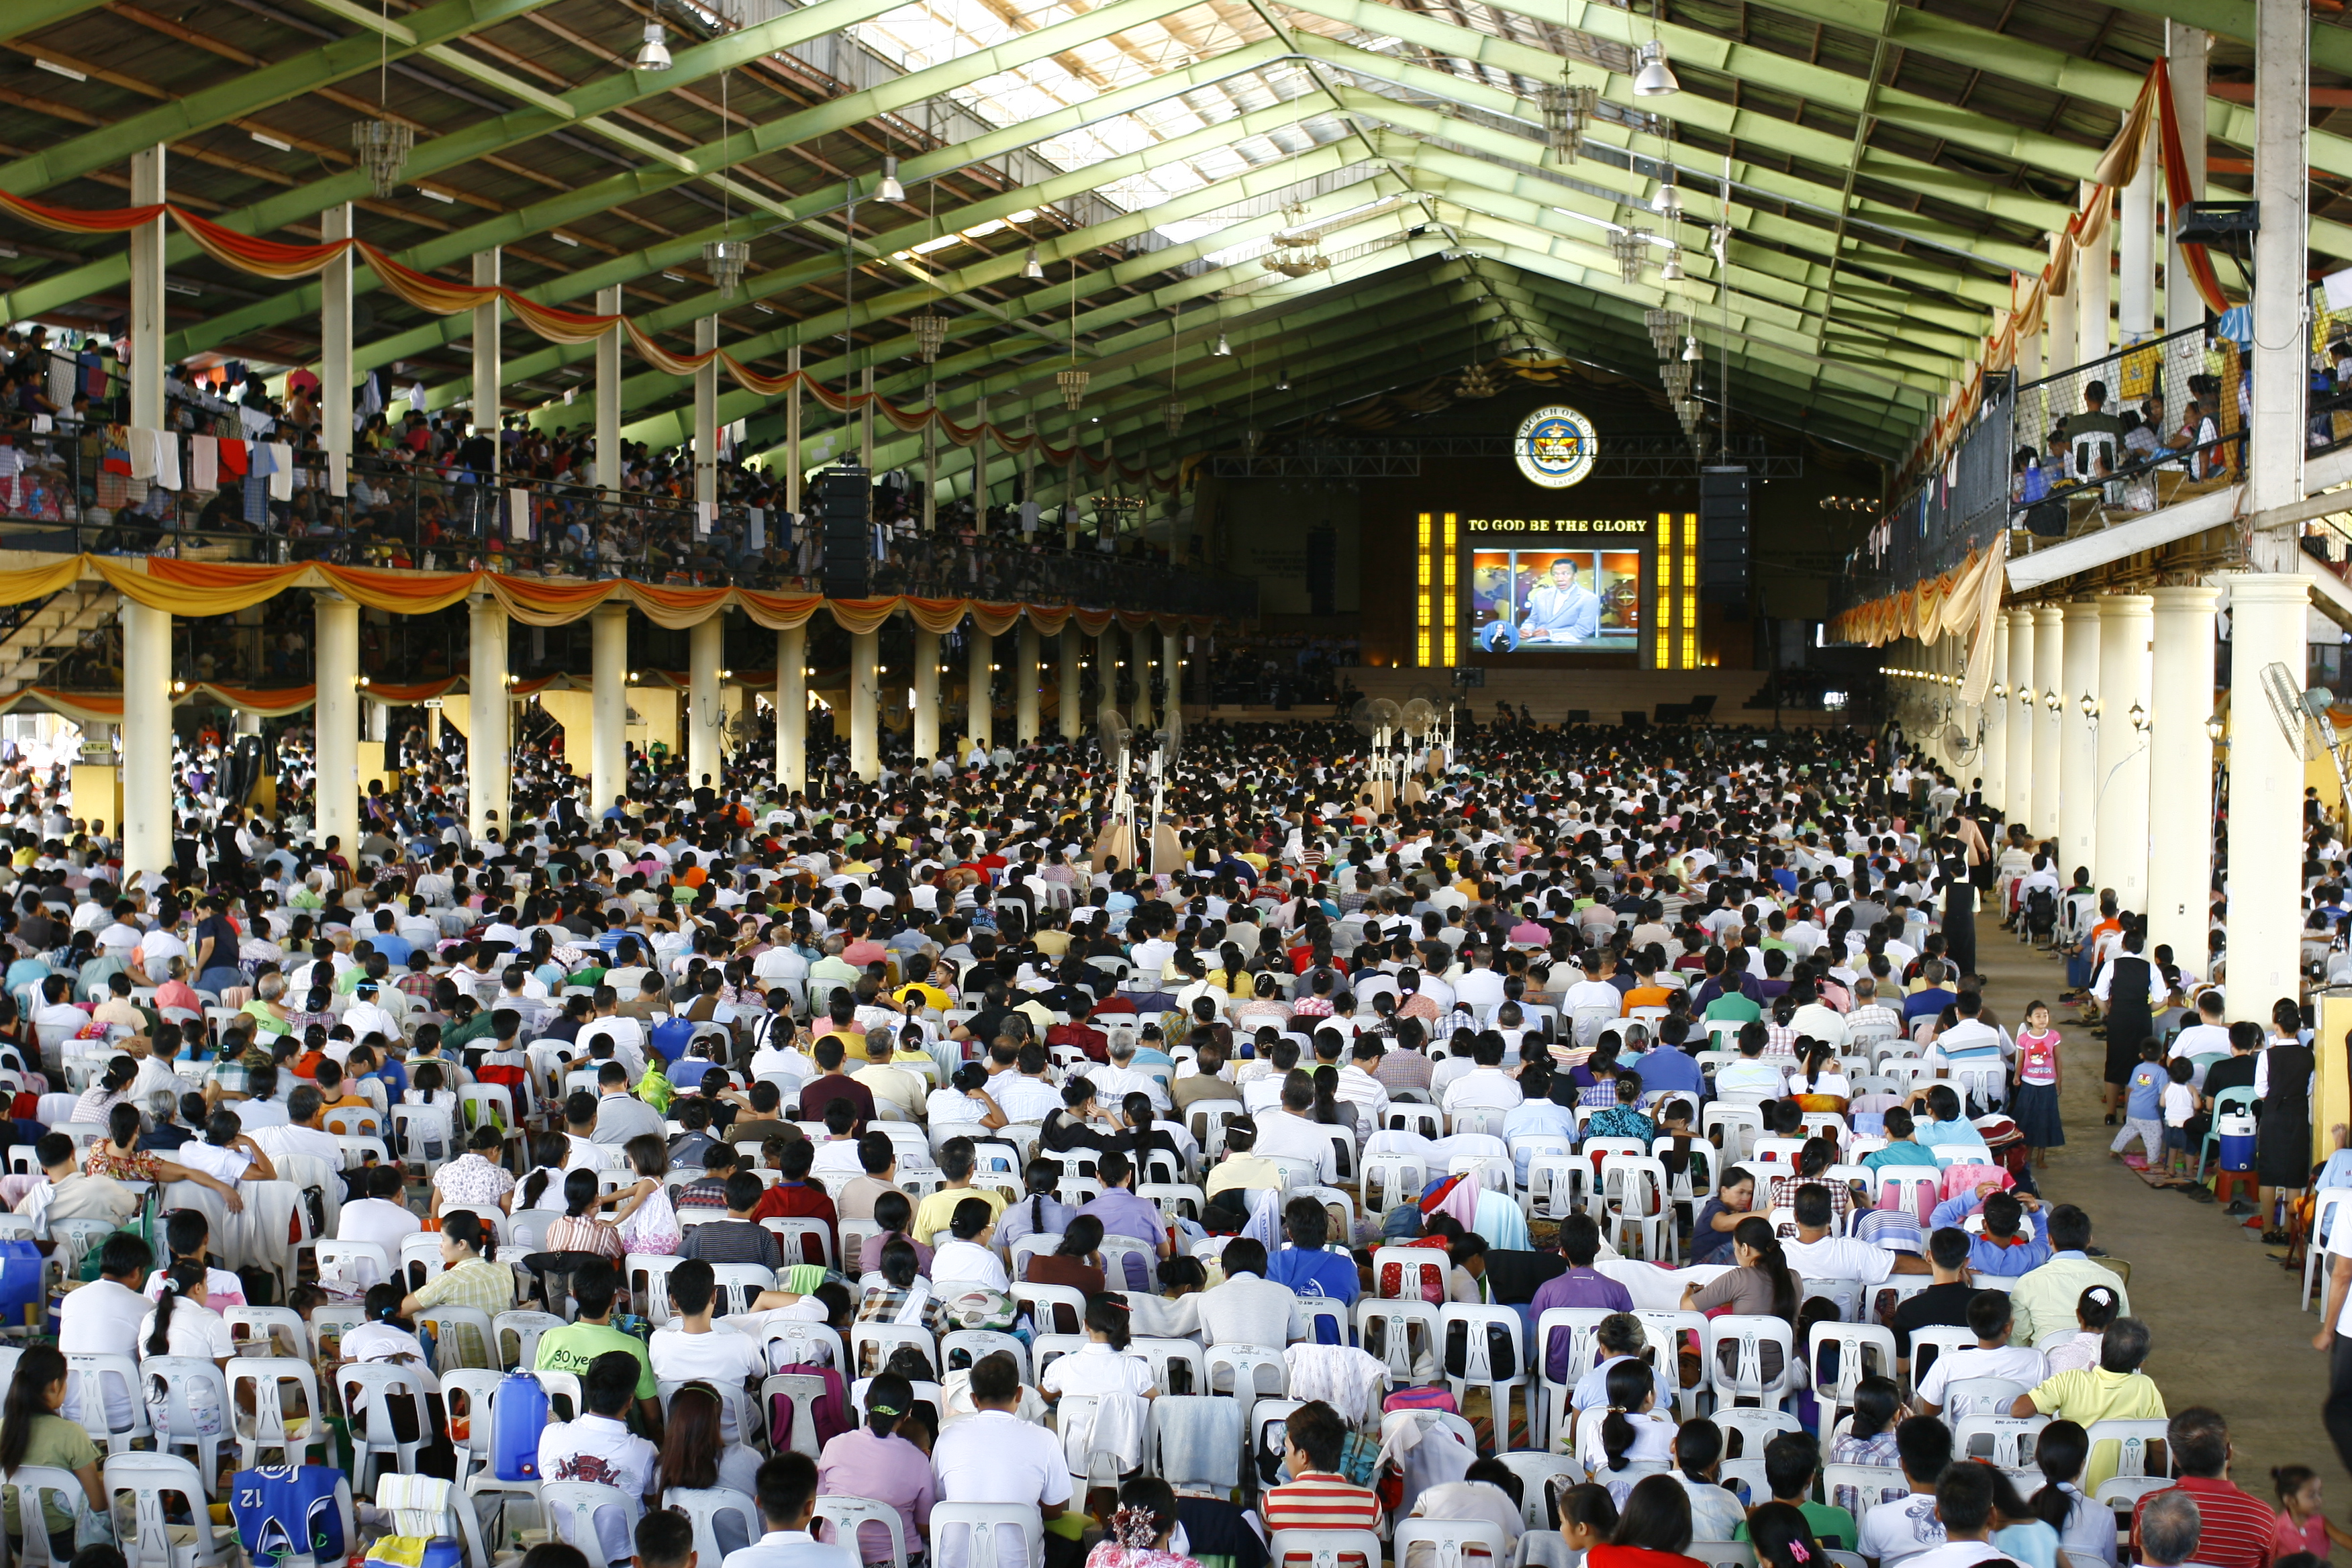 Members of the Church of God in Manila and nearby provinces flocked to the ADD Convention Center in Apalit, Pampanga for the three-day event.